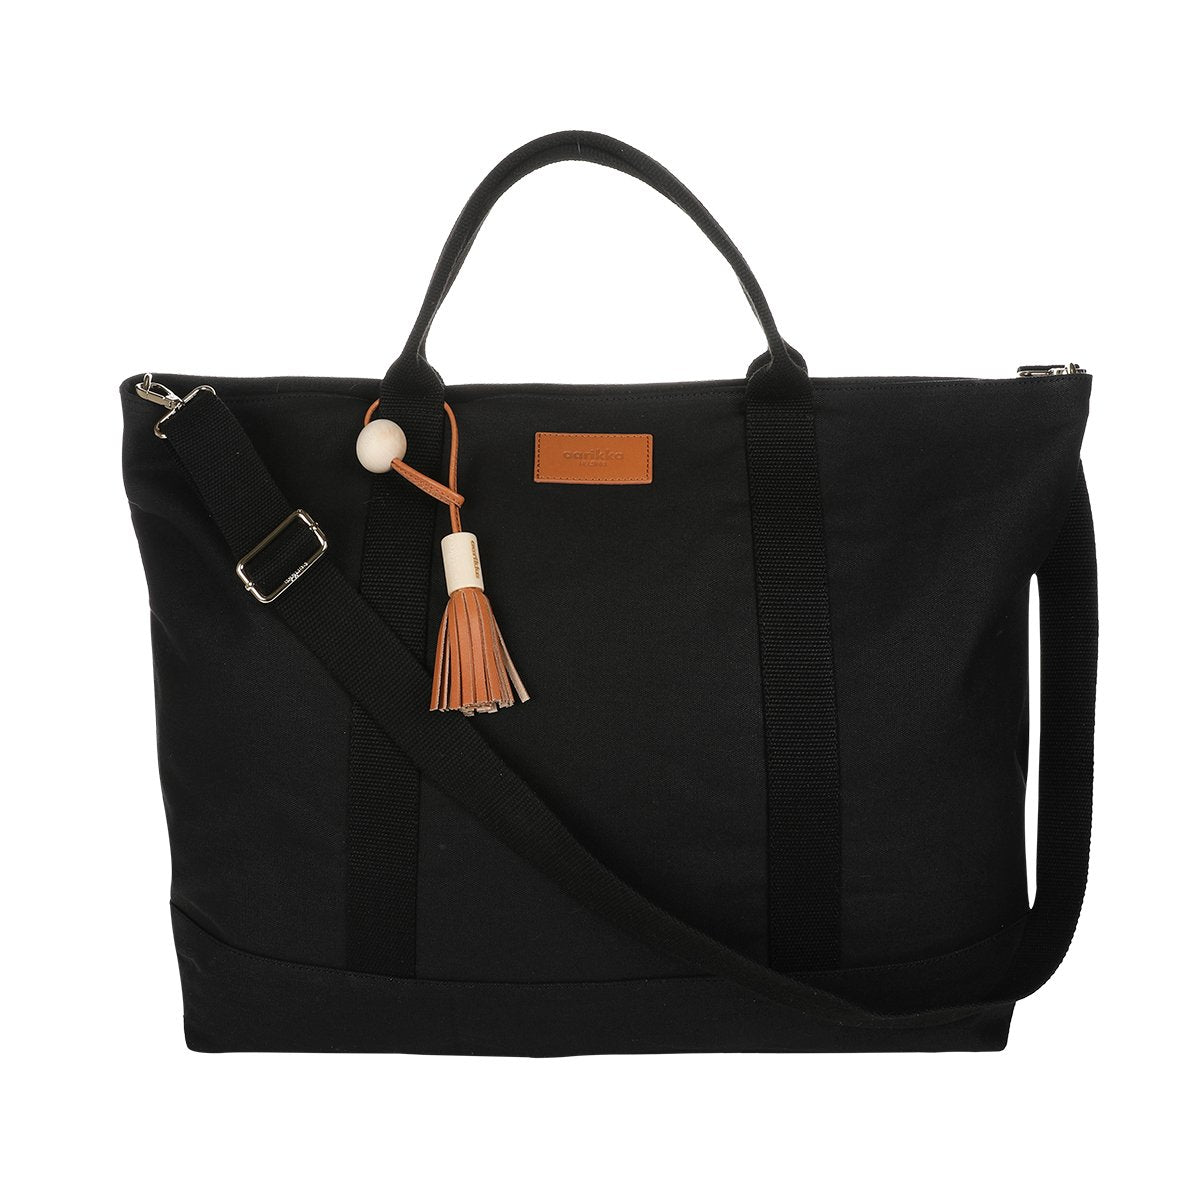 Bertta weekend bag